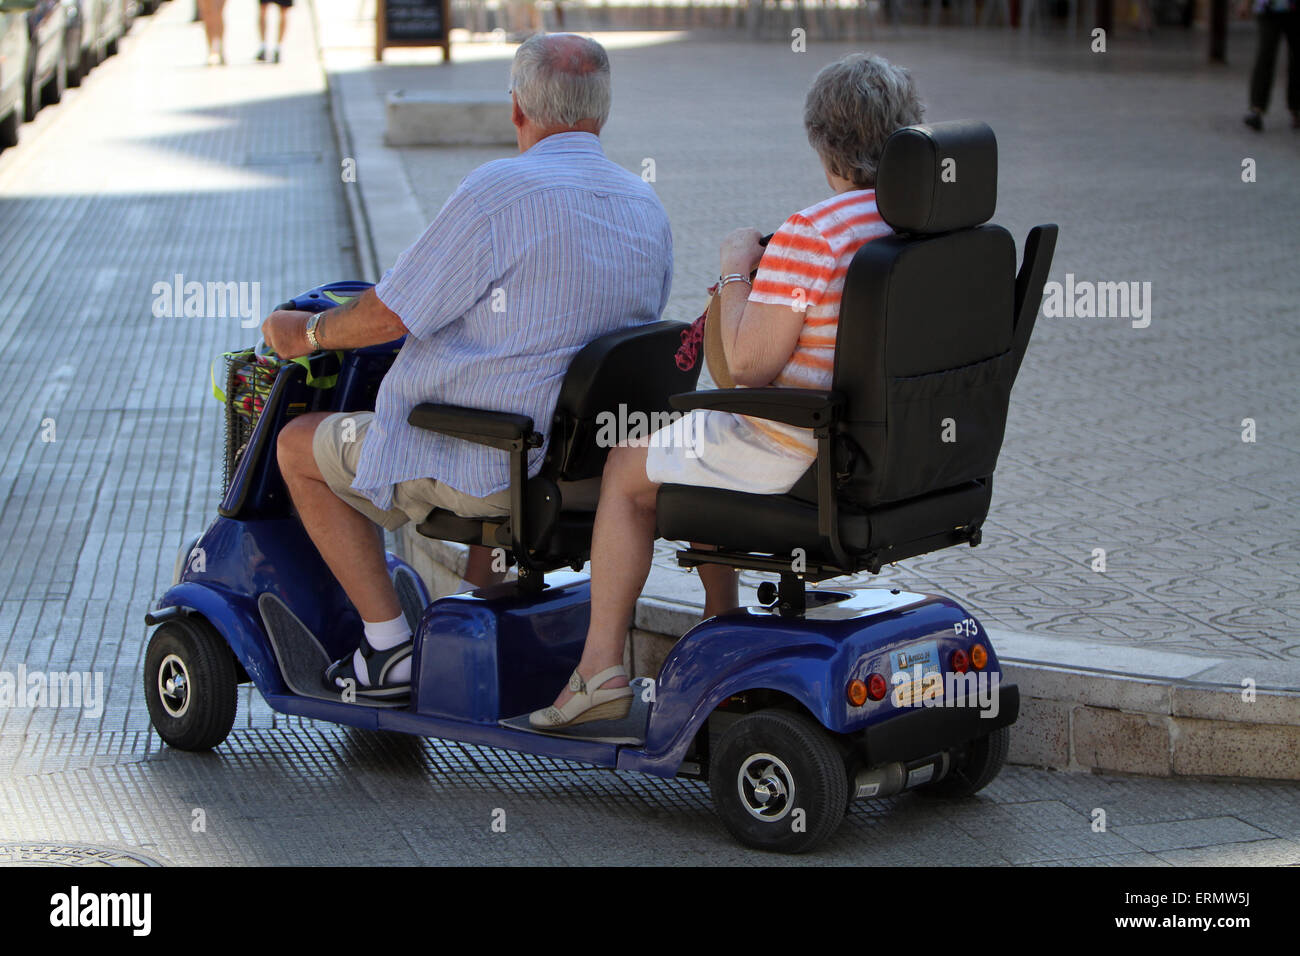 Elderly couple on mobility scooter tandem stock photo for Motorized scooters for the elderly